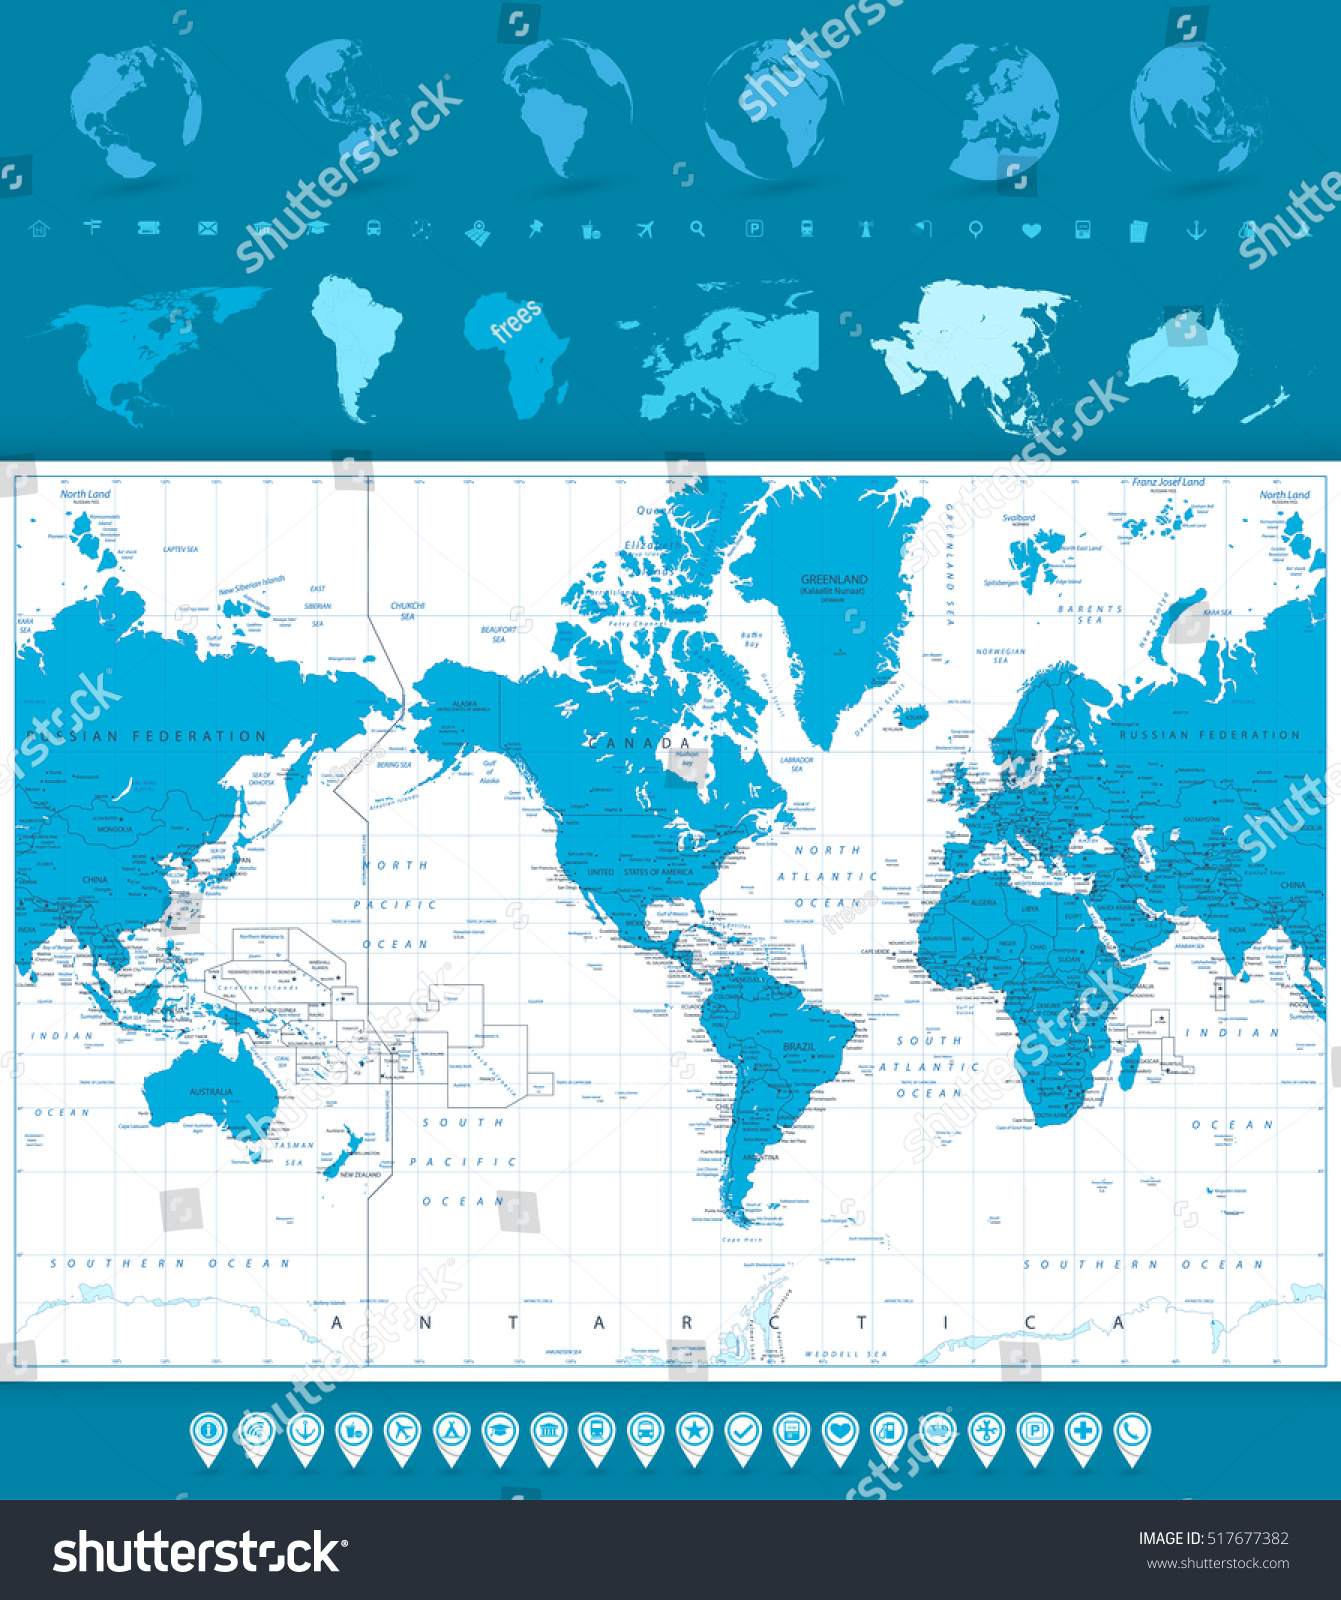 World map globes navigation icons america stock vector 517677382 world map globes and navigation icons america in center highly detailed vector illustration gumiabroncs Gallery